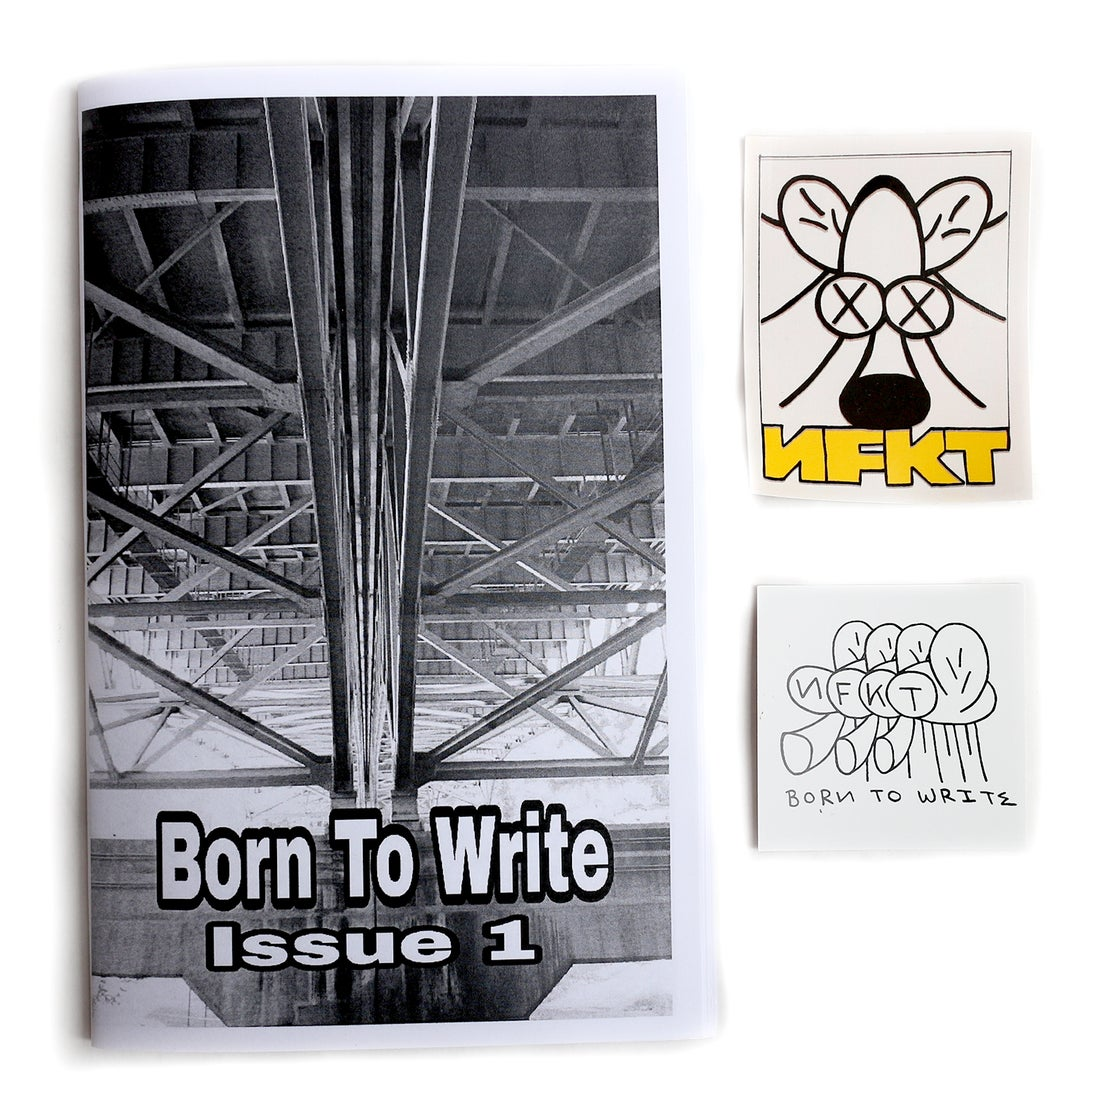 Image of BORN TO WRITE #1 - NFKT